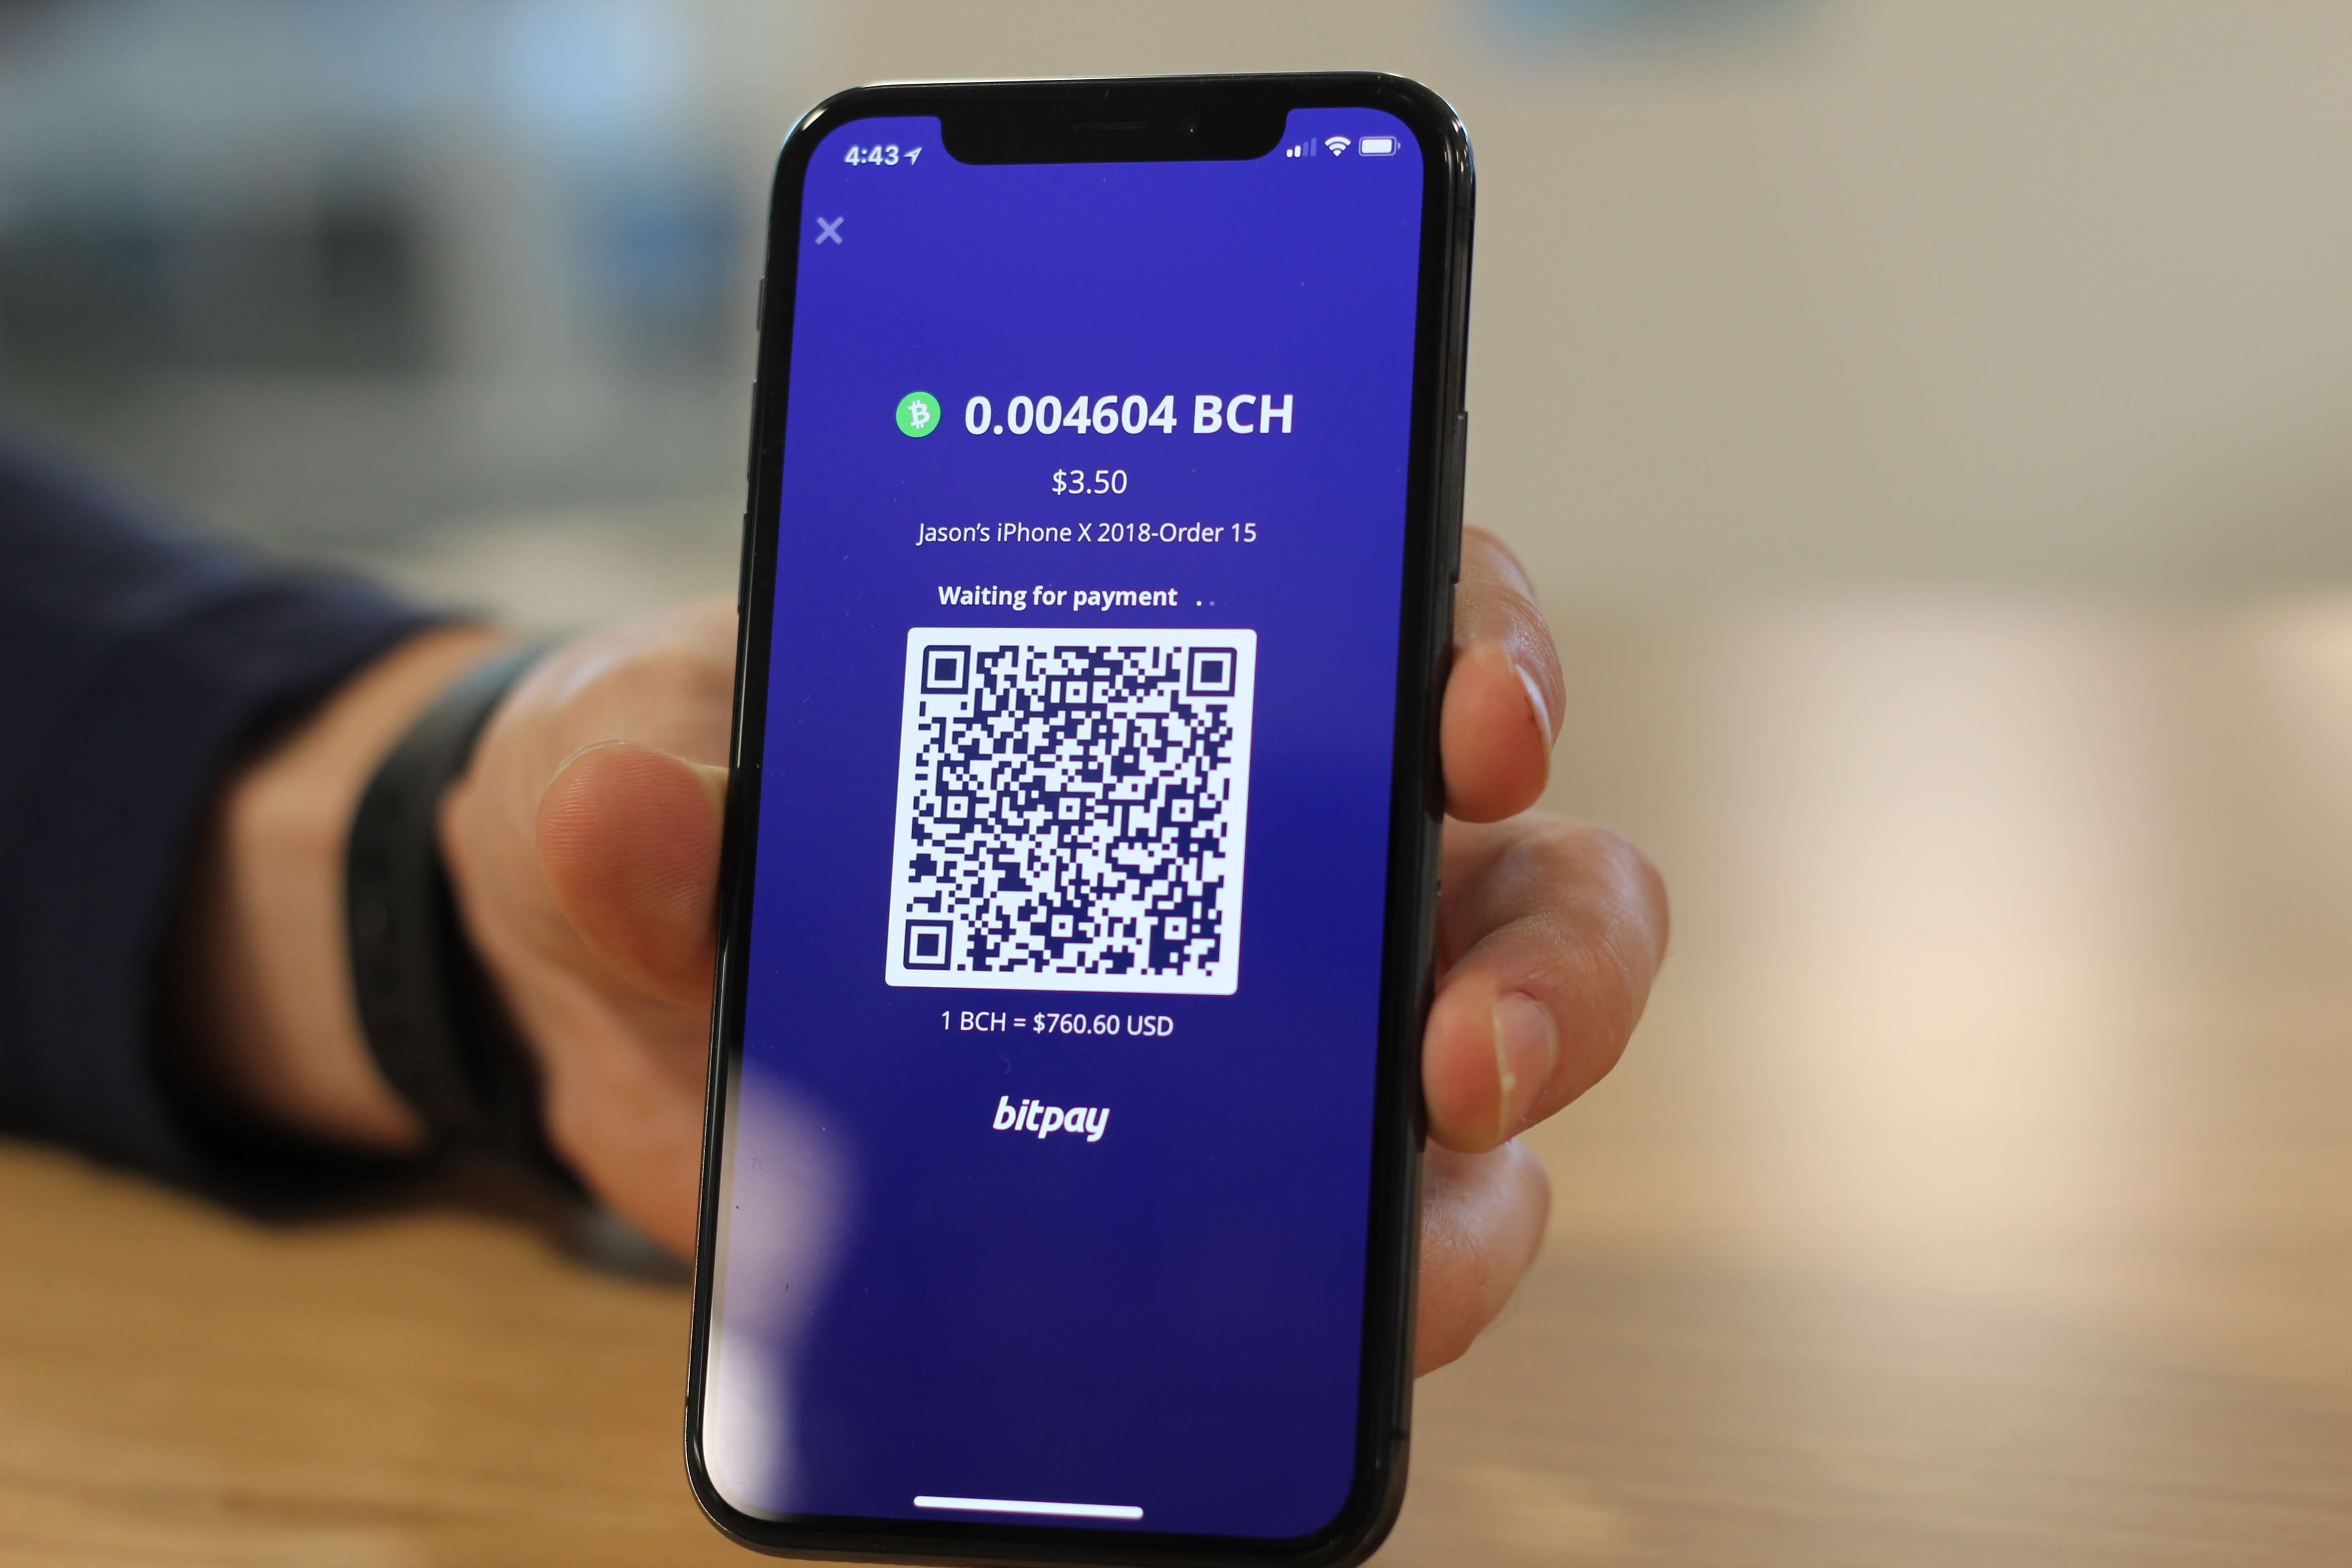 what cryptocurrencies can you use with bitpay card